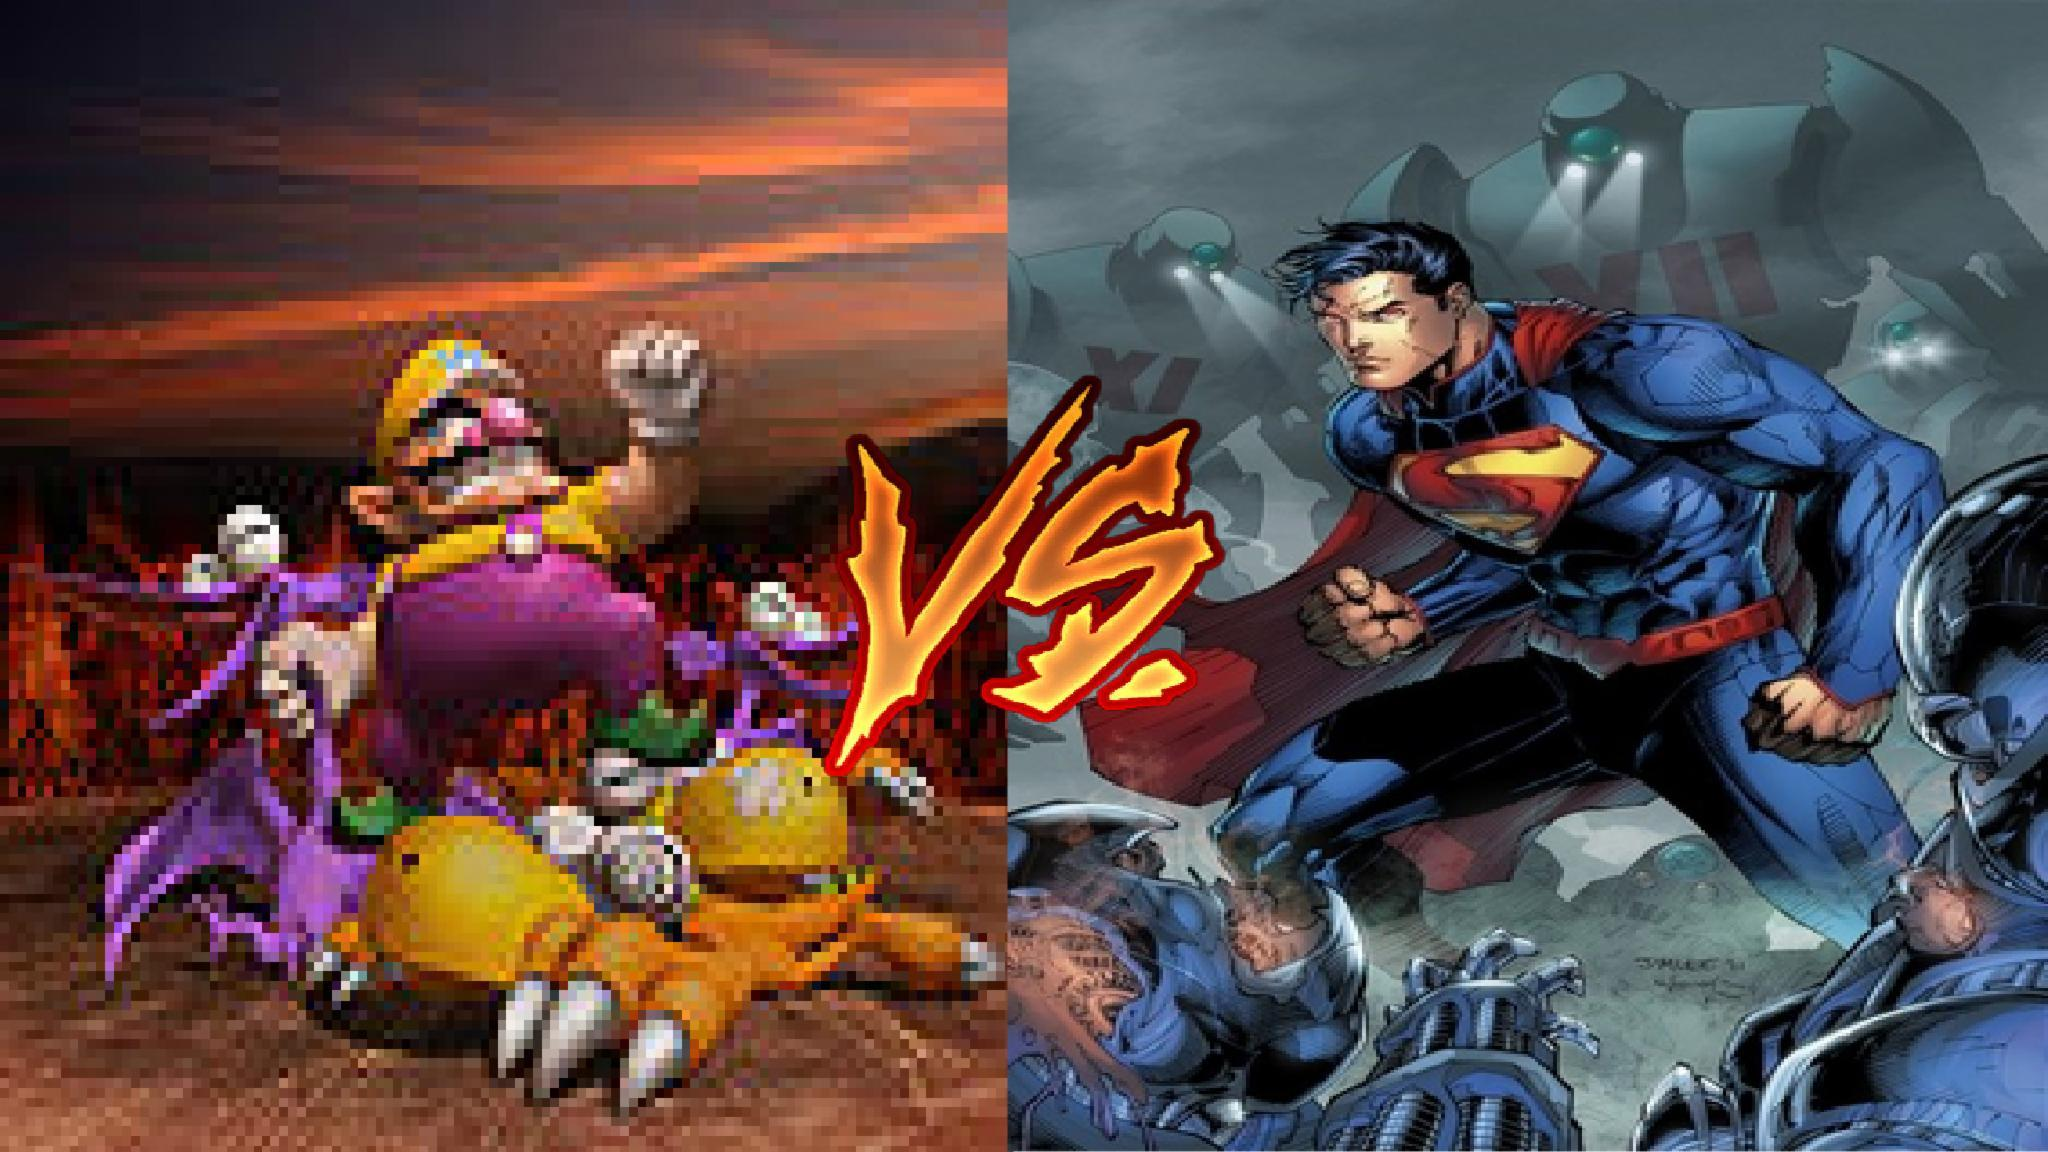 Wario VS Superman